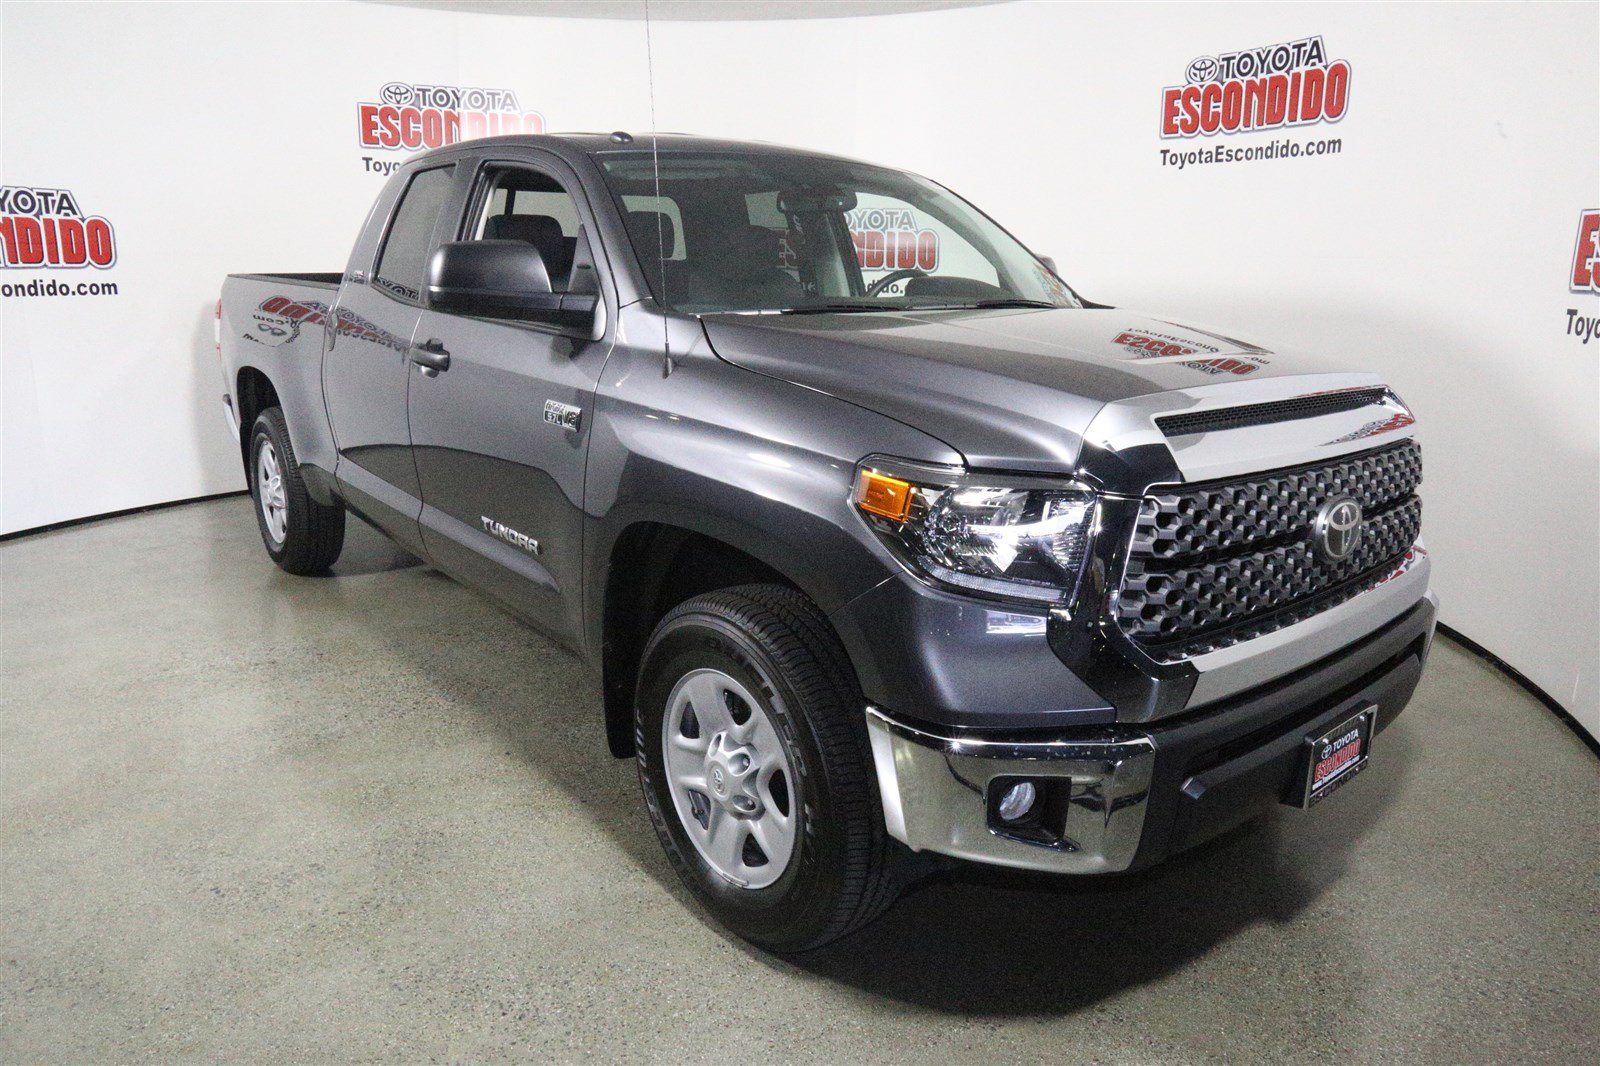 new 2018 toyota tundra sr5 2wd double cab pickup in escondido 1015128 toyota escondido. Black Bedroom Furniture Sets. Home Design Ideas